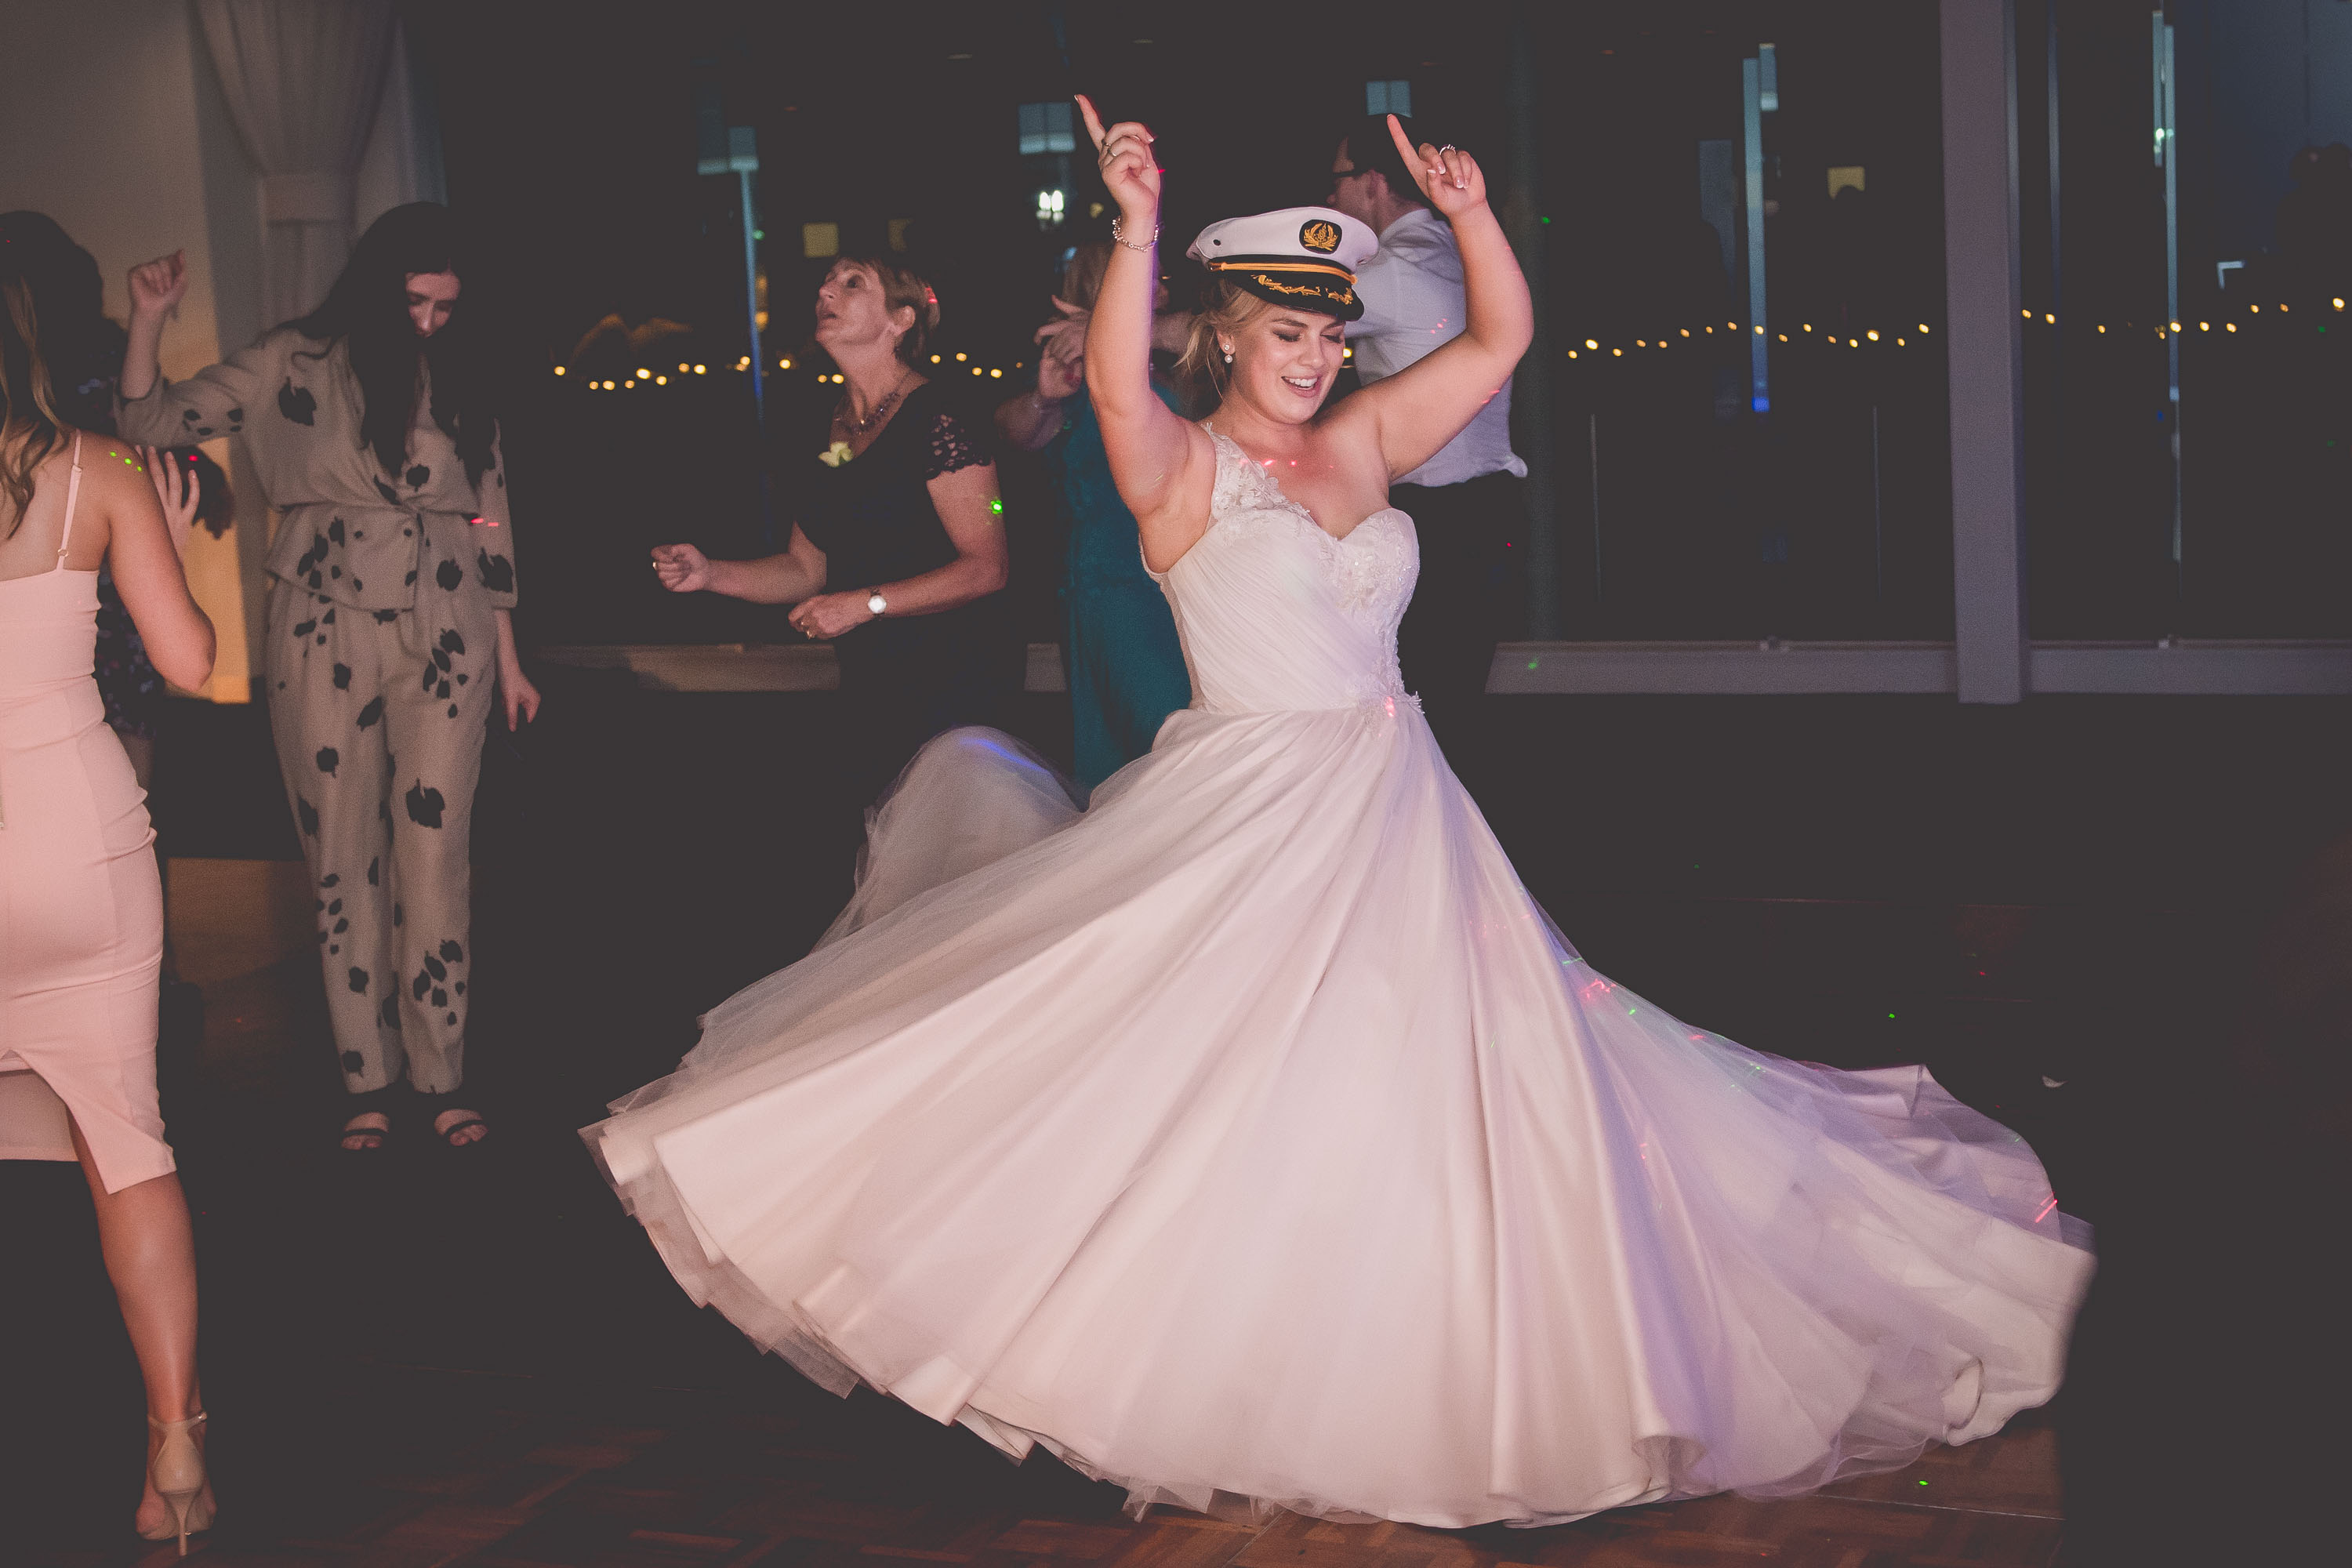 A bride wearing a captain's hat dances on her wedding dance floor